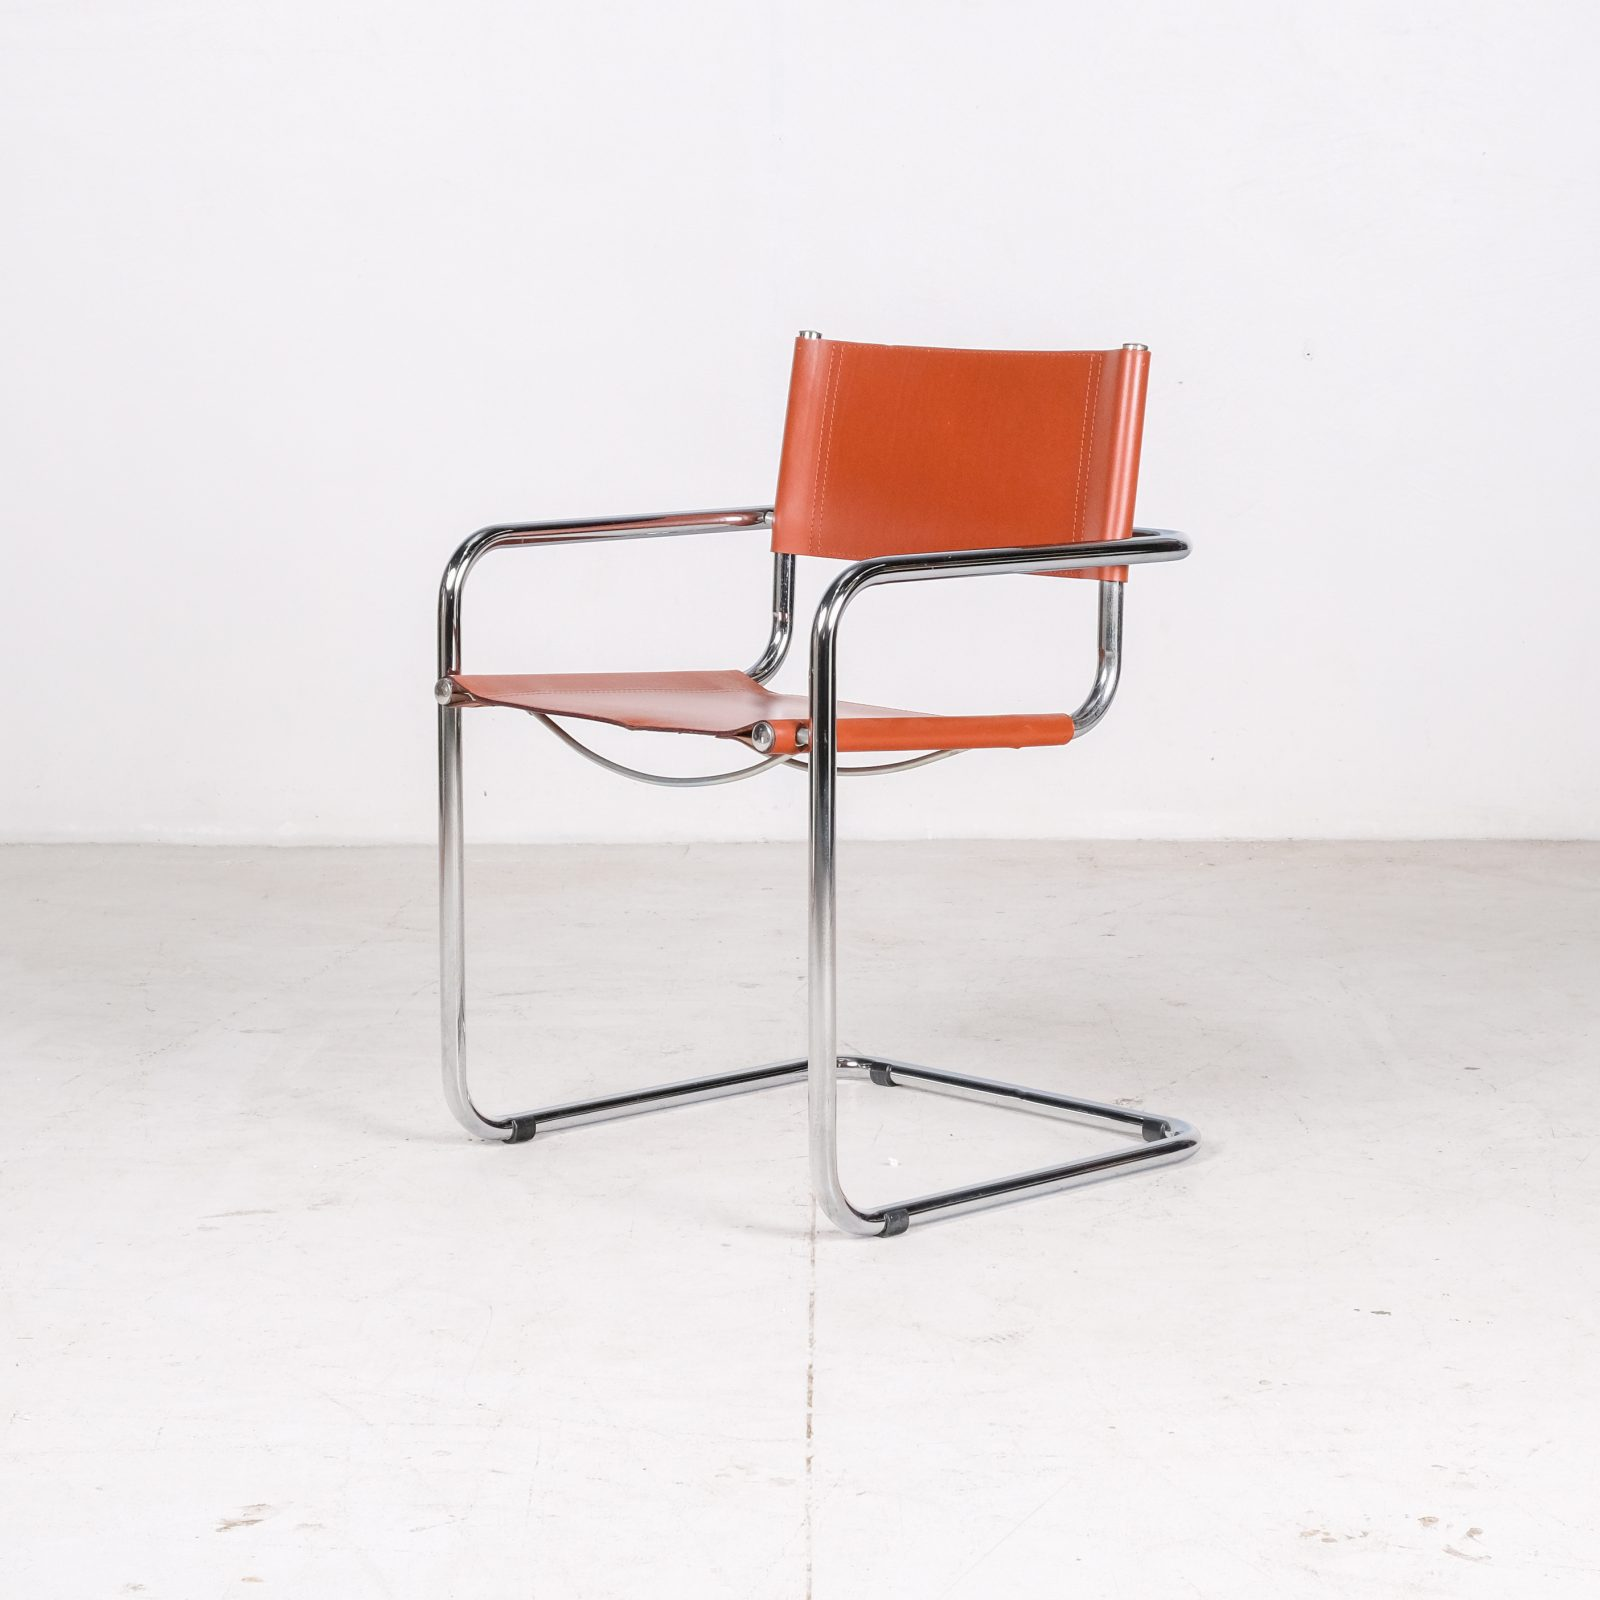 Set Of 4 Model S34 Cantilever Chairs In Cognac Leather By Mart Stam For Thonet, 1980s, Germany Oh